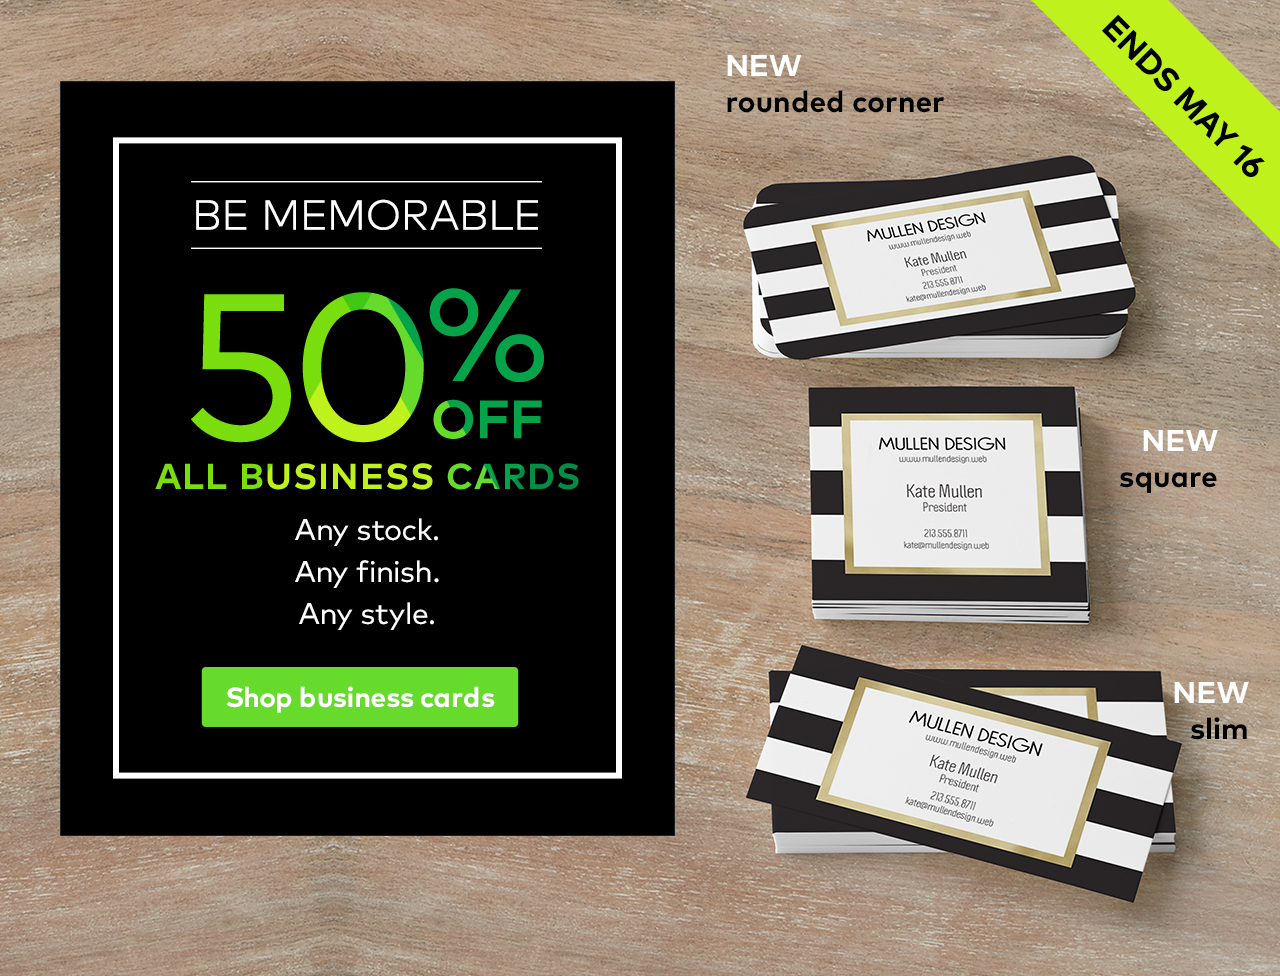 Vistaprint: We ♥ savings | 50% off business cards + up to 40% off ...